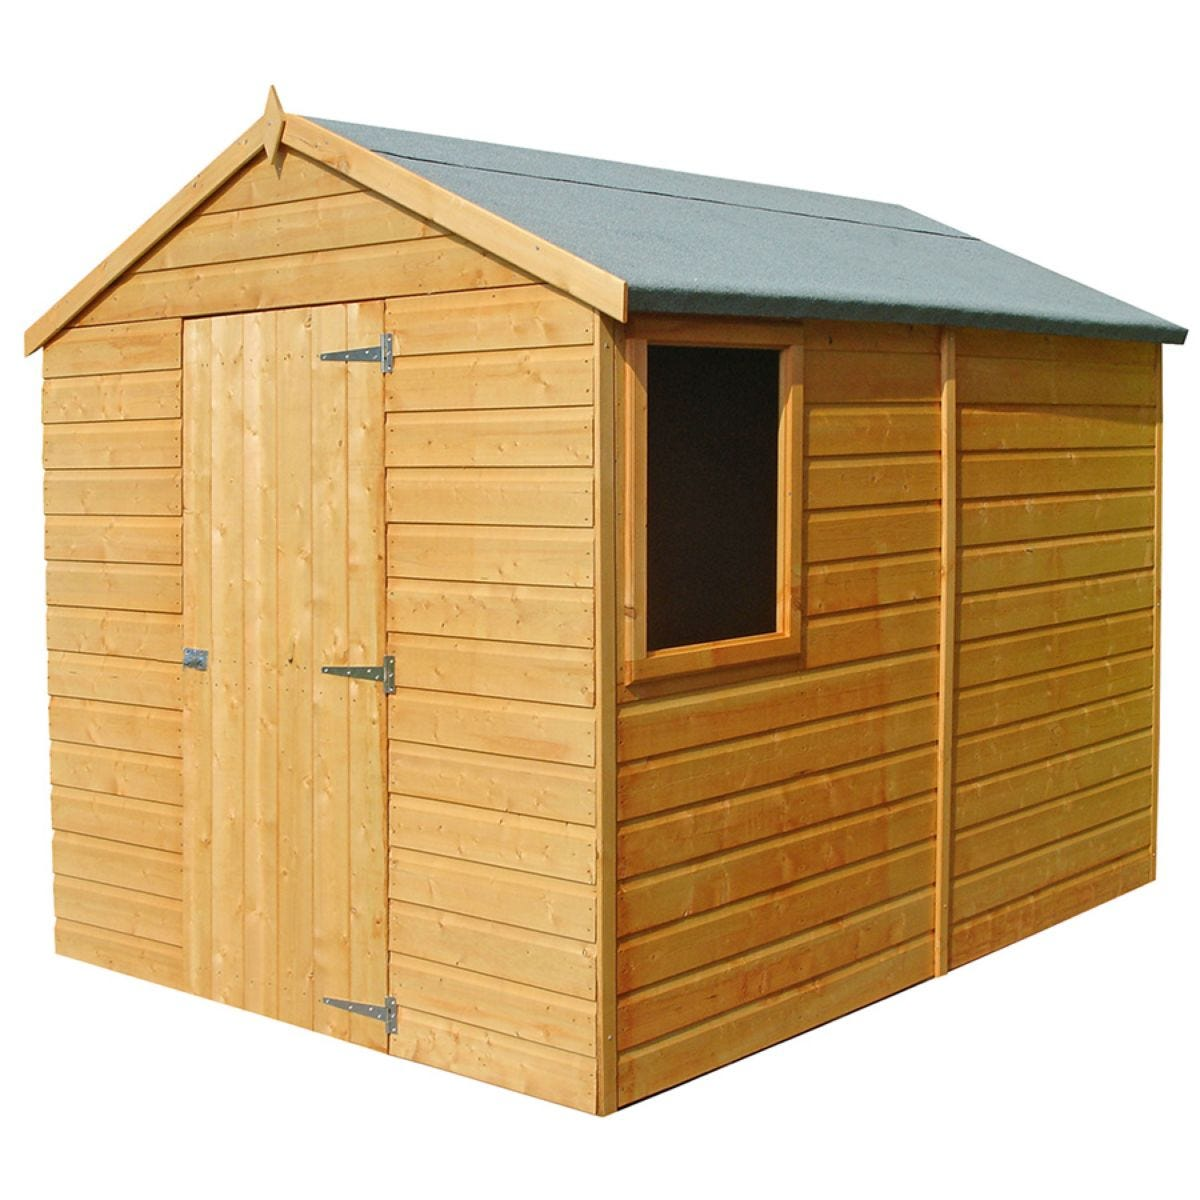 Shire Durham 6ft x 8ft Wooden Apex Garden Shed